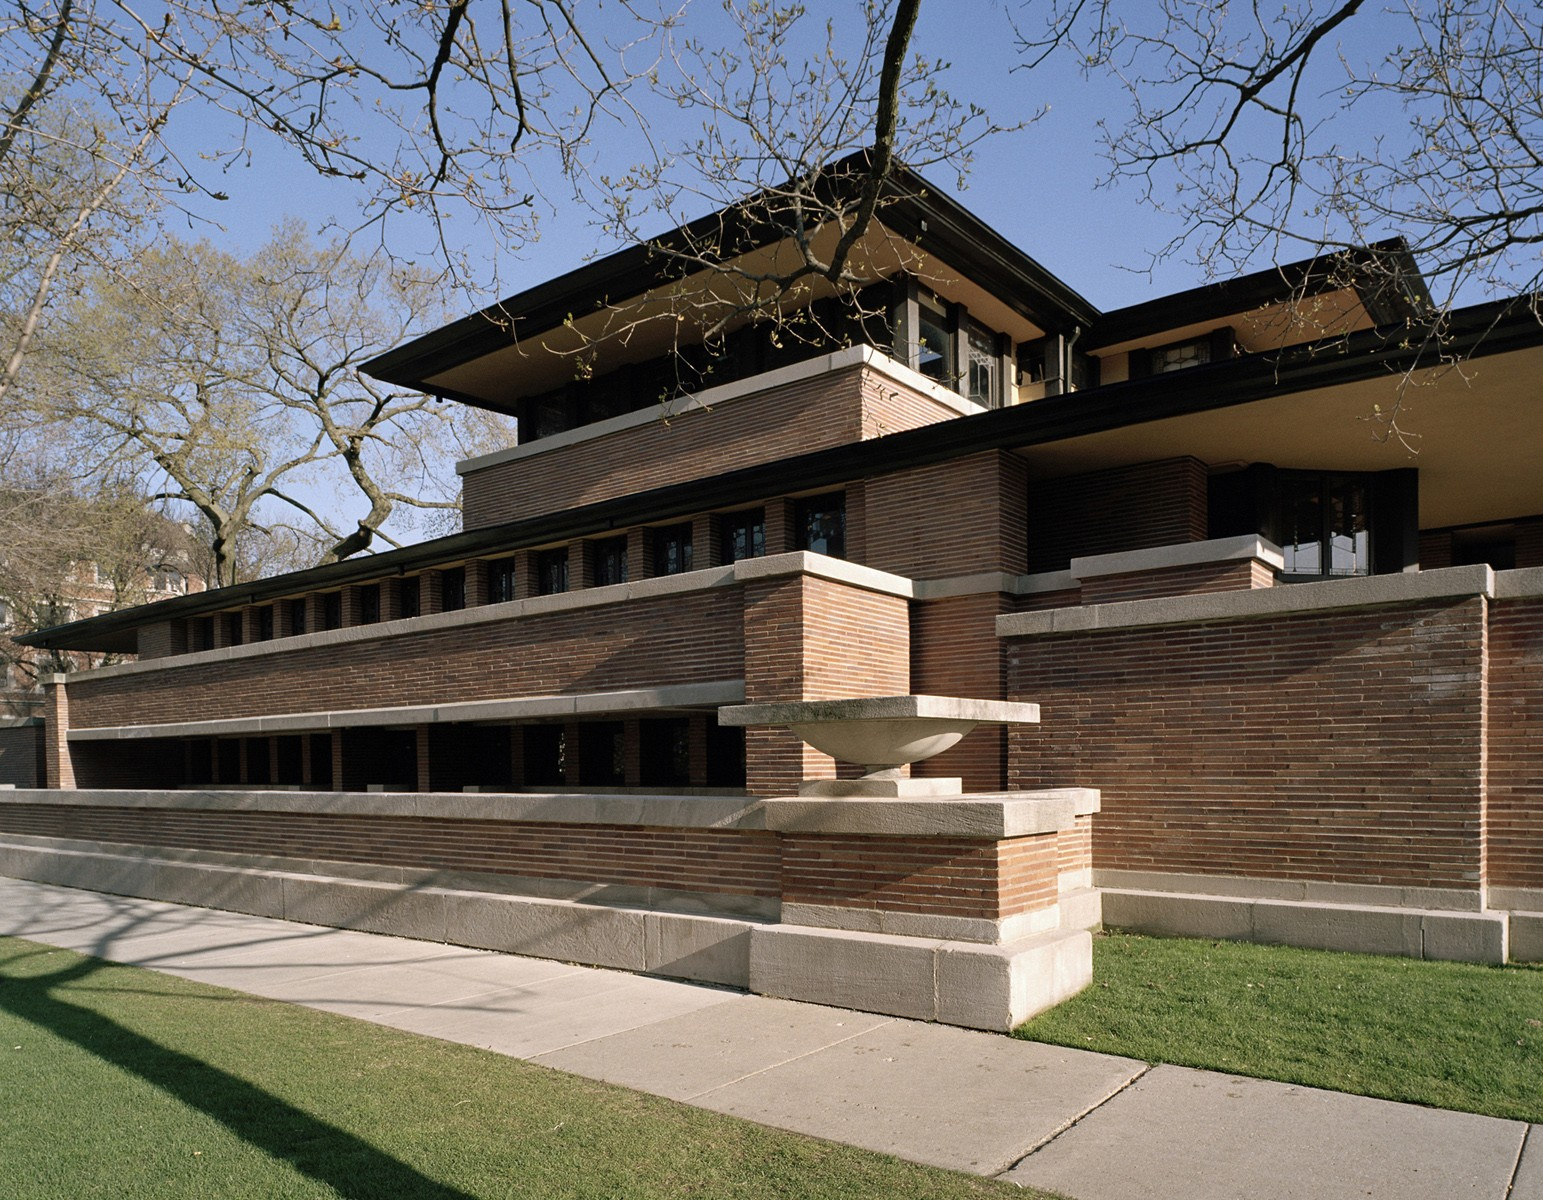 Frank Lloyd Wright Robie House Buildings Of Chicago Chicago Architecture Center Cac